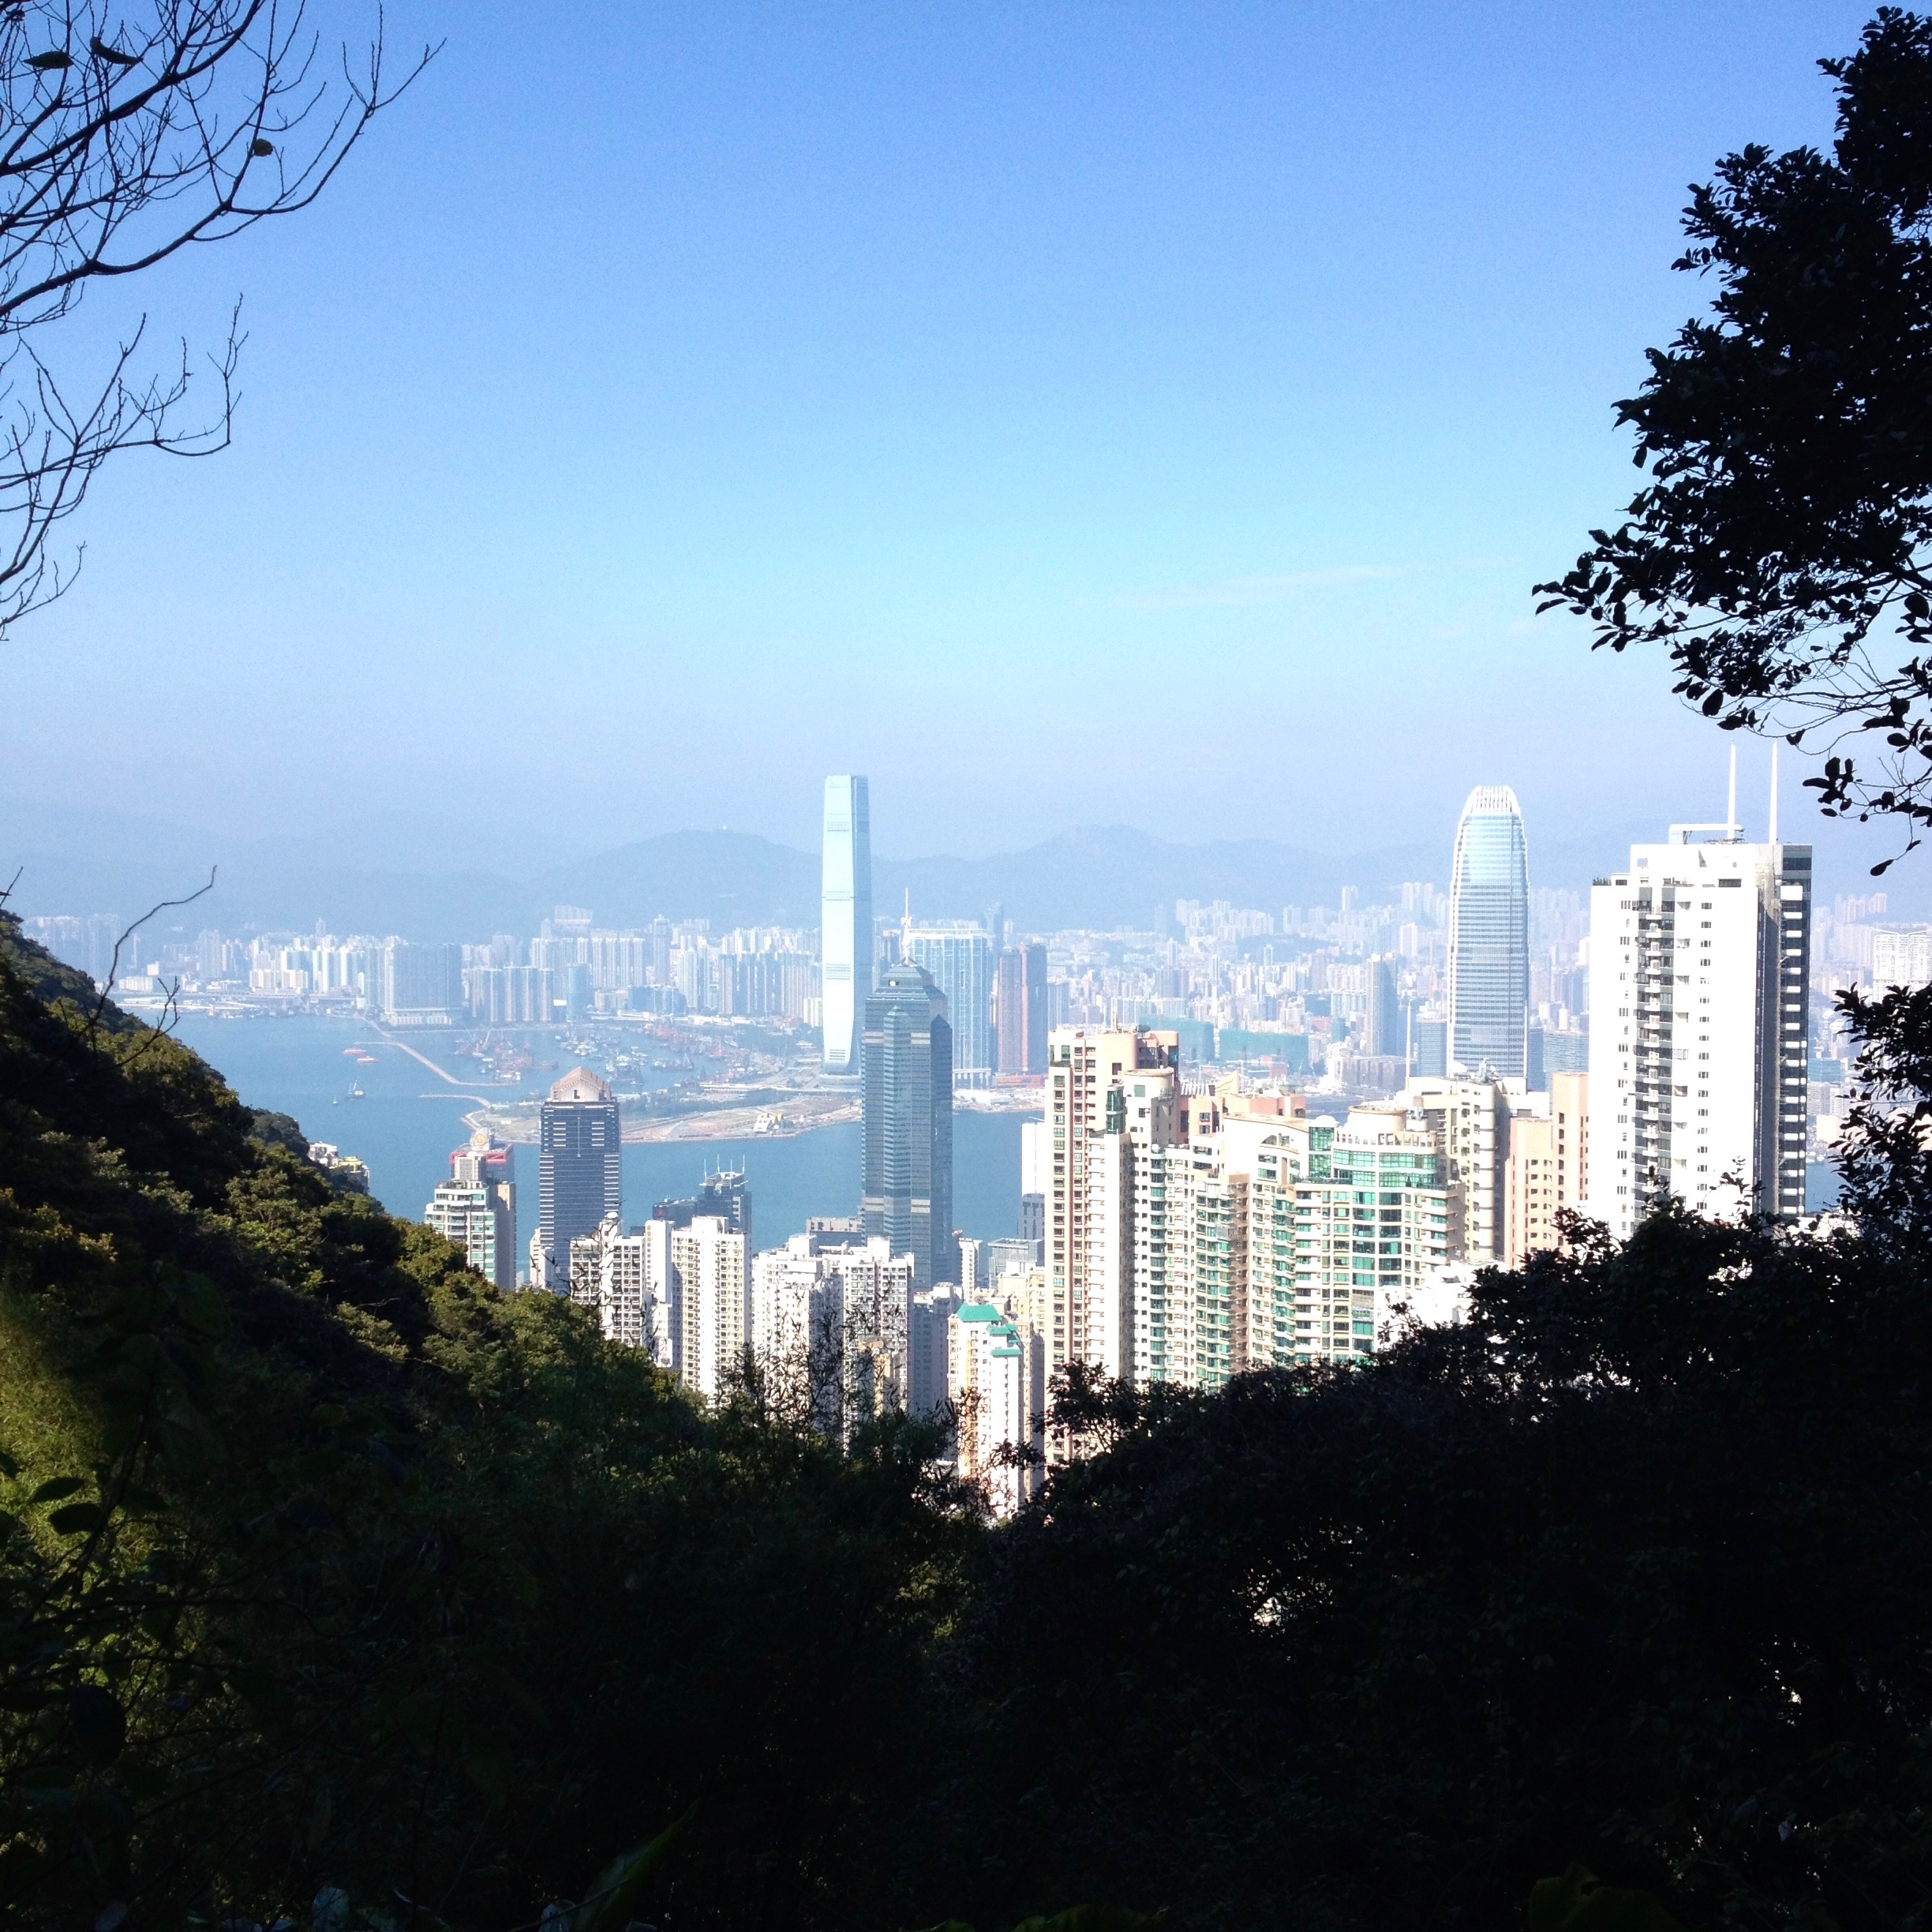 Nothing like a Fin'Tonic after a walk up the Hong Kong peak!